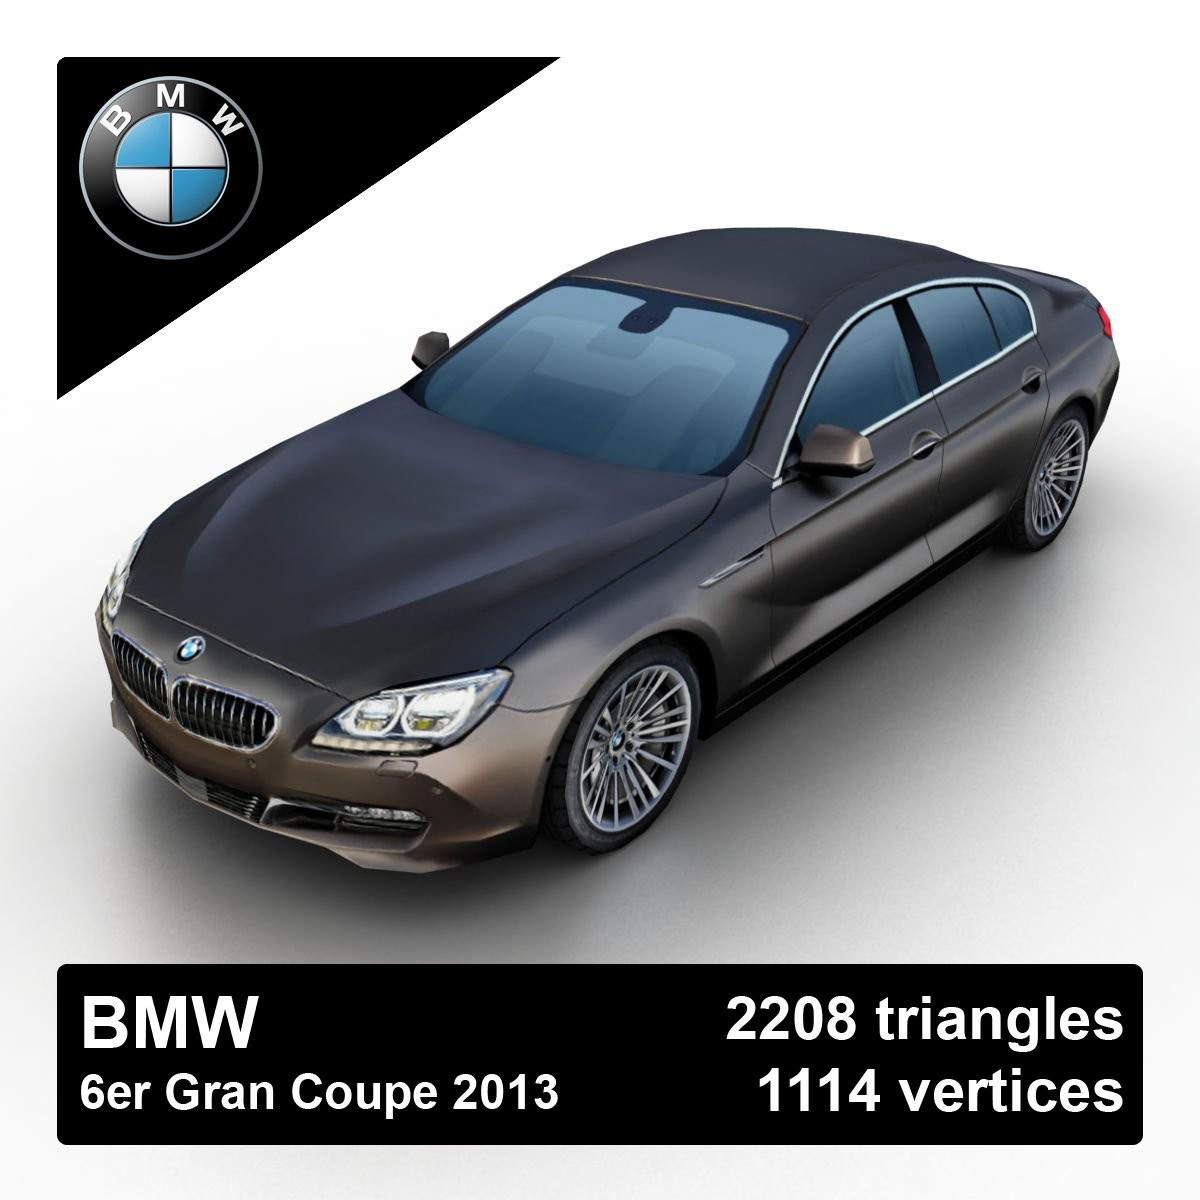 BMW_6er_Gran_Coupe_2013_0000.jpg